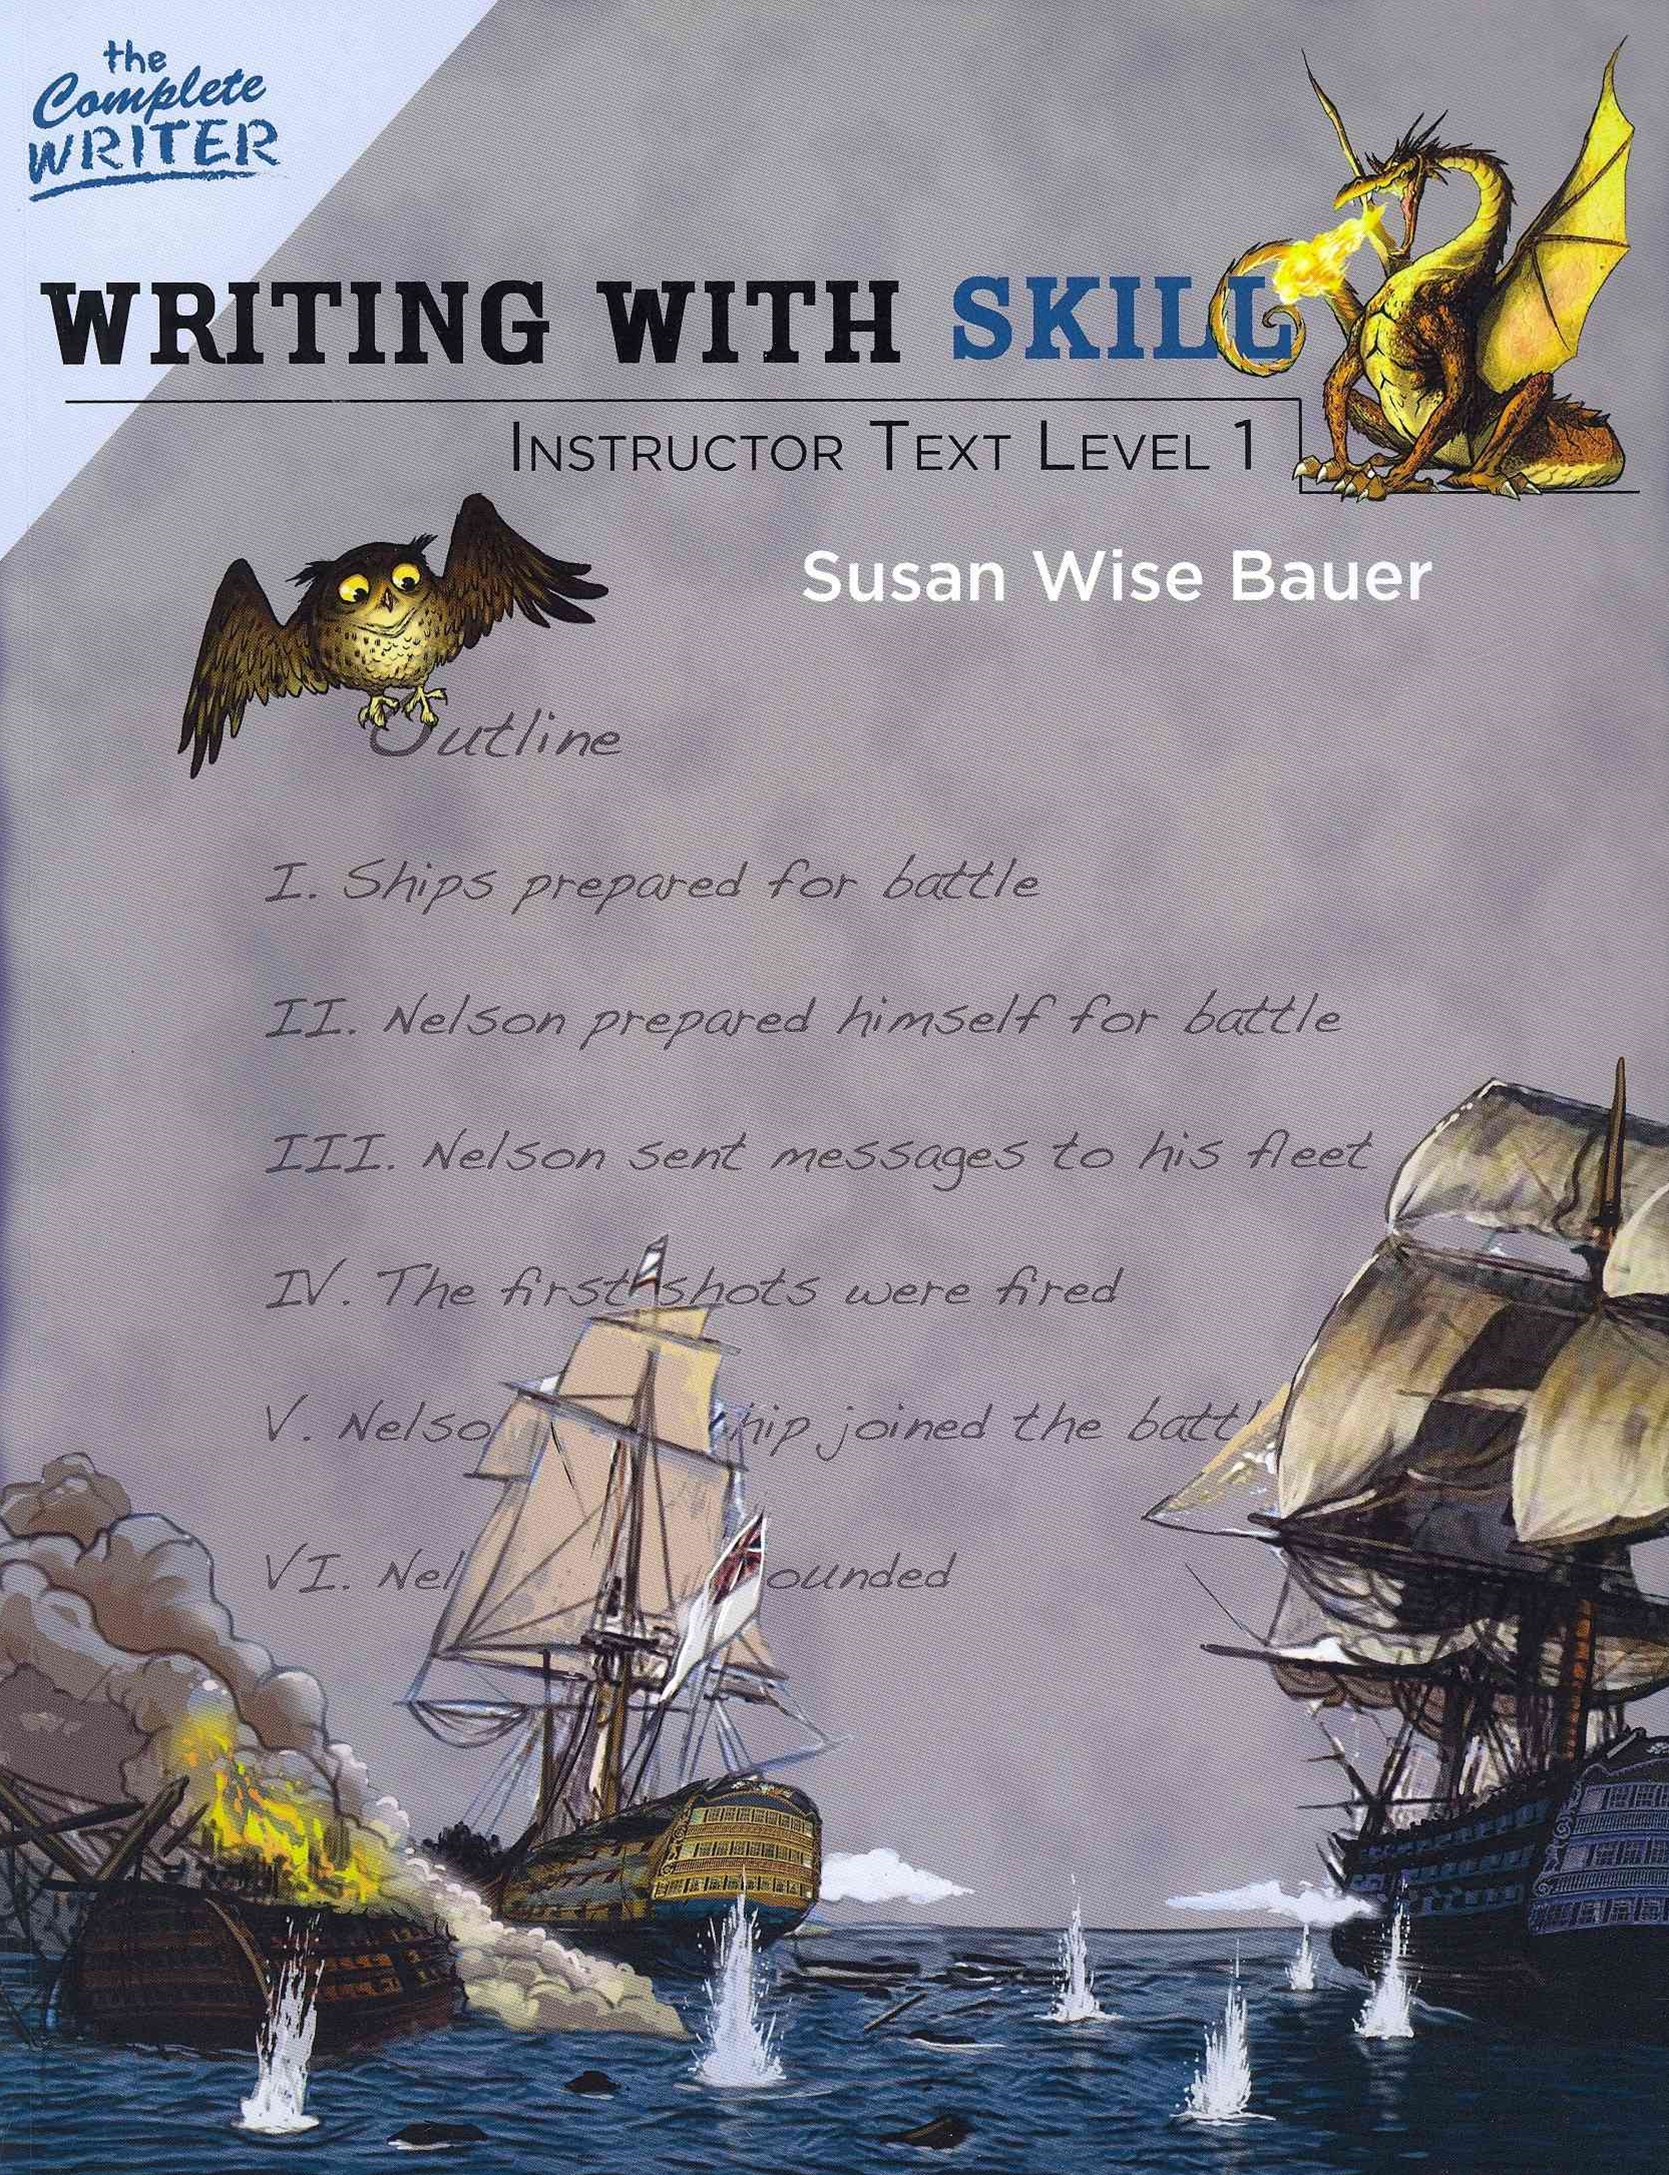 Writing with Skill - Instructor Text Level 1